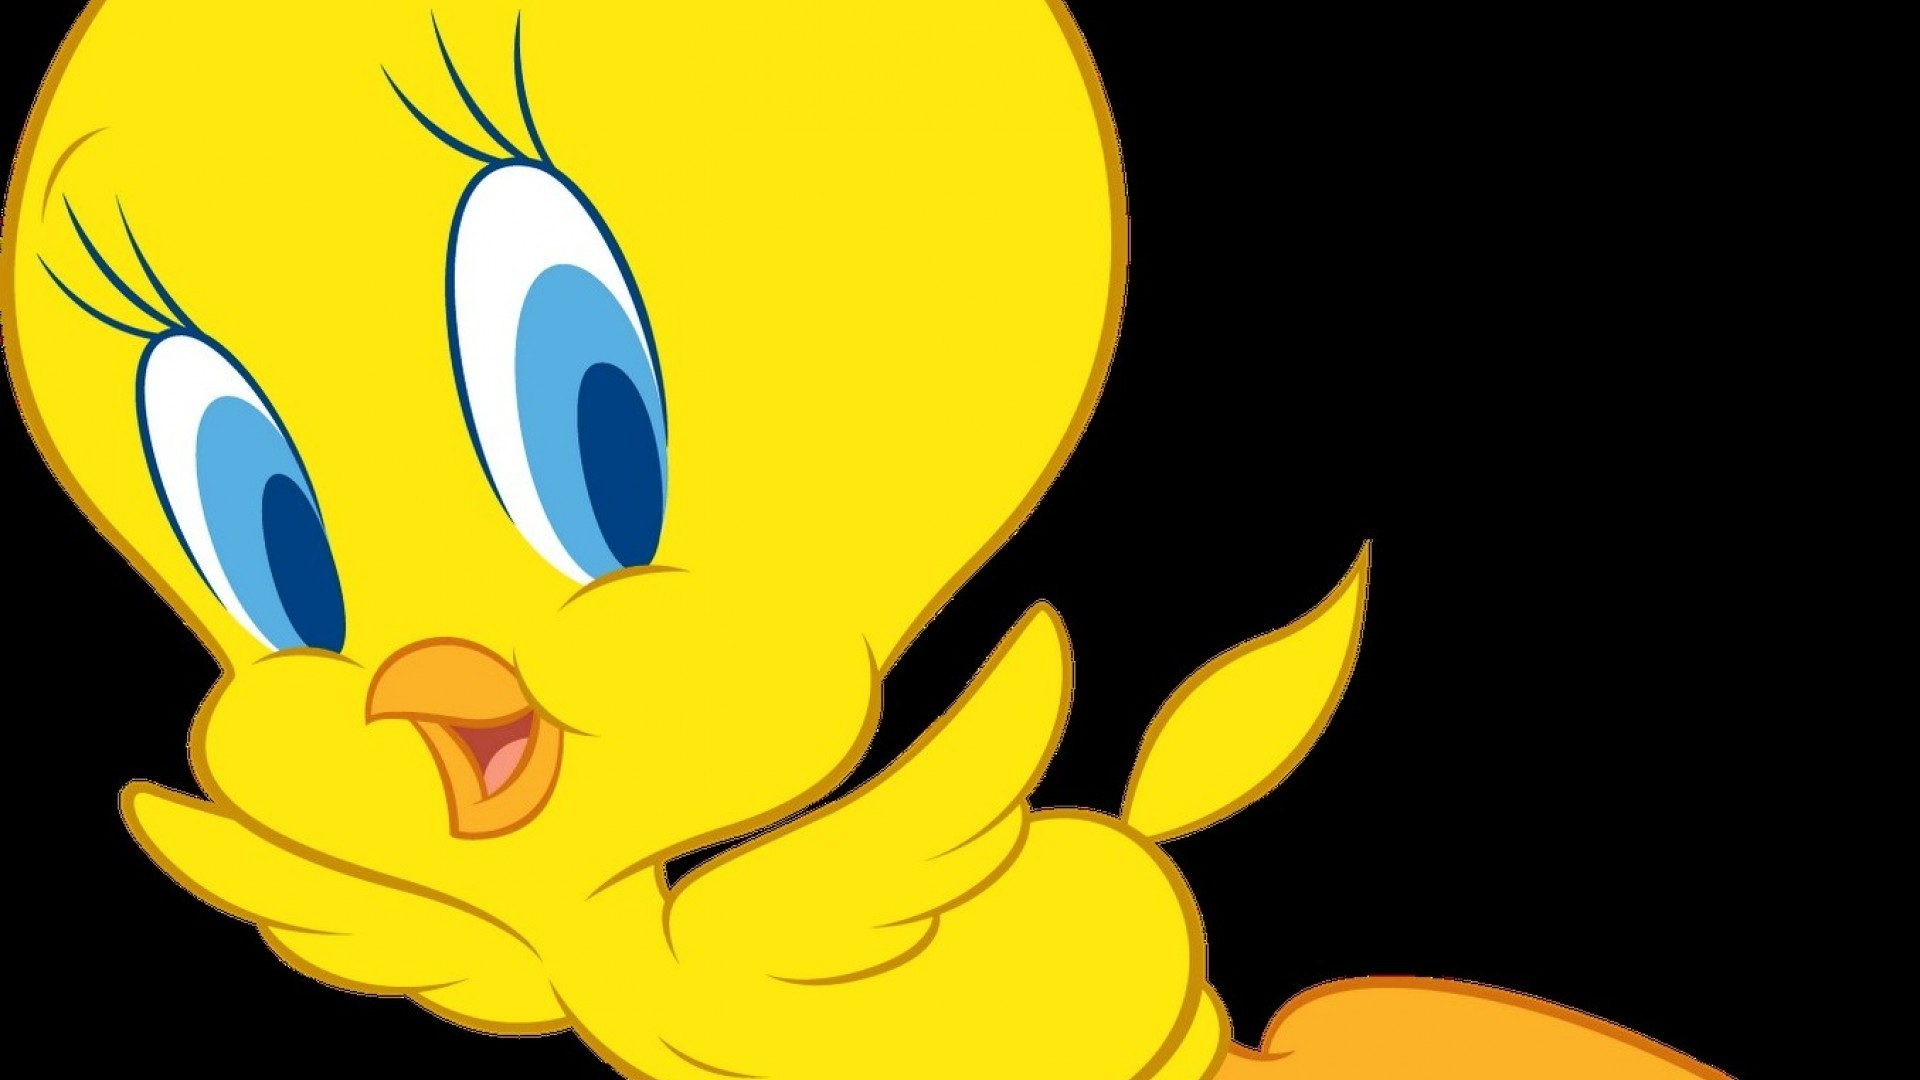 Wallpapers Of Tweety 65 Images